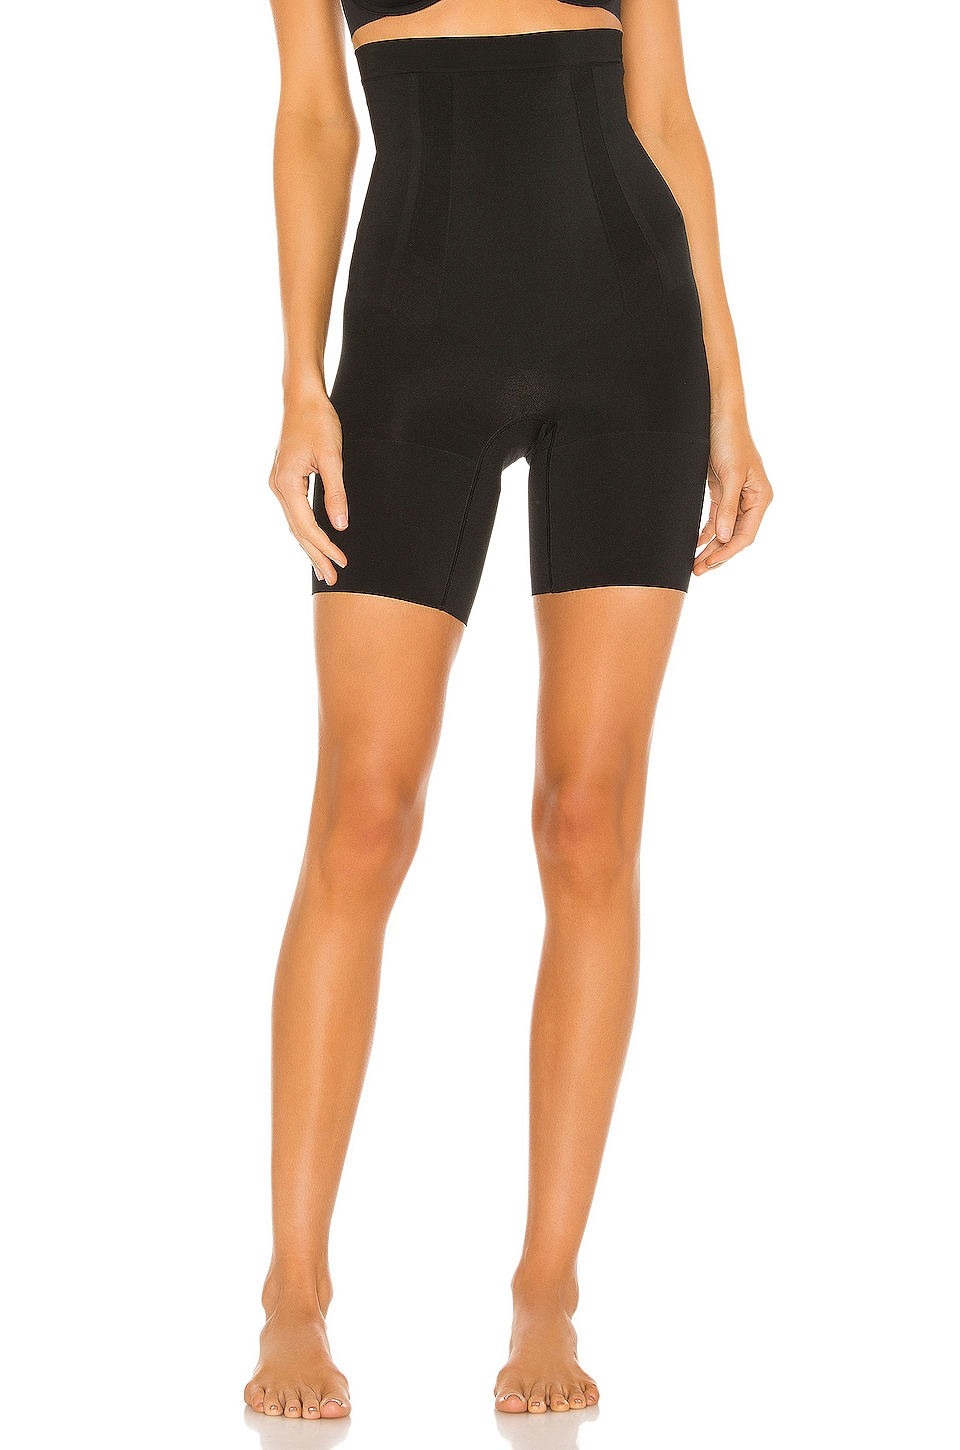 SPANX Oncore High Waisted Mid Thigh Short in Very Black